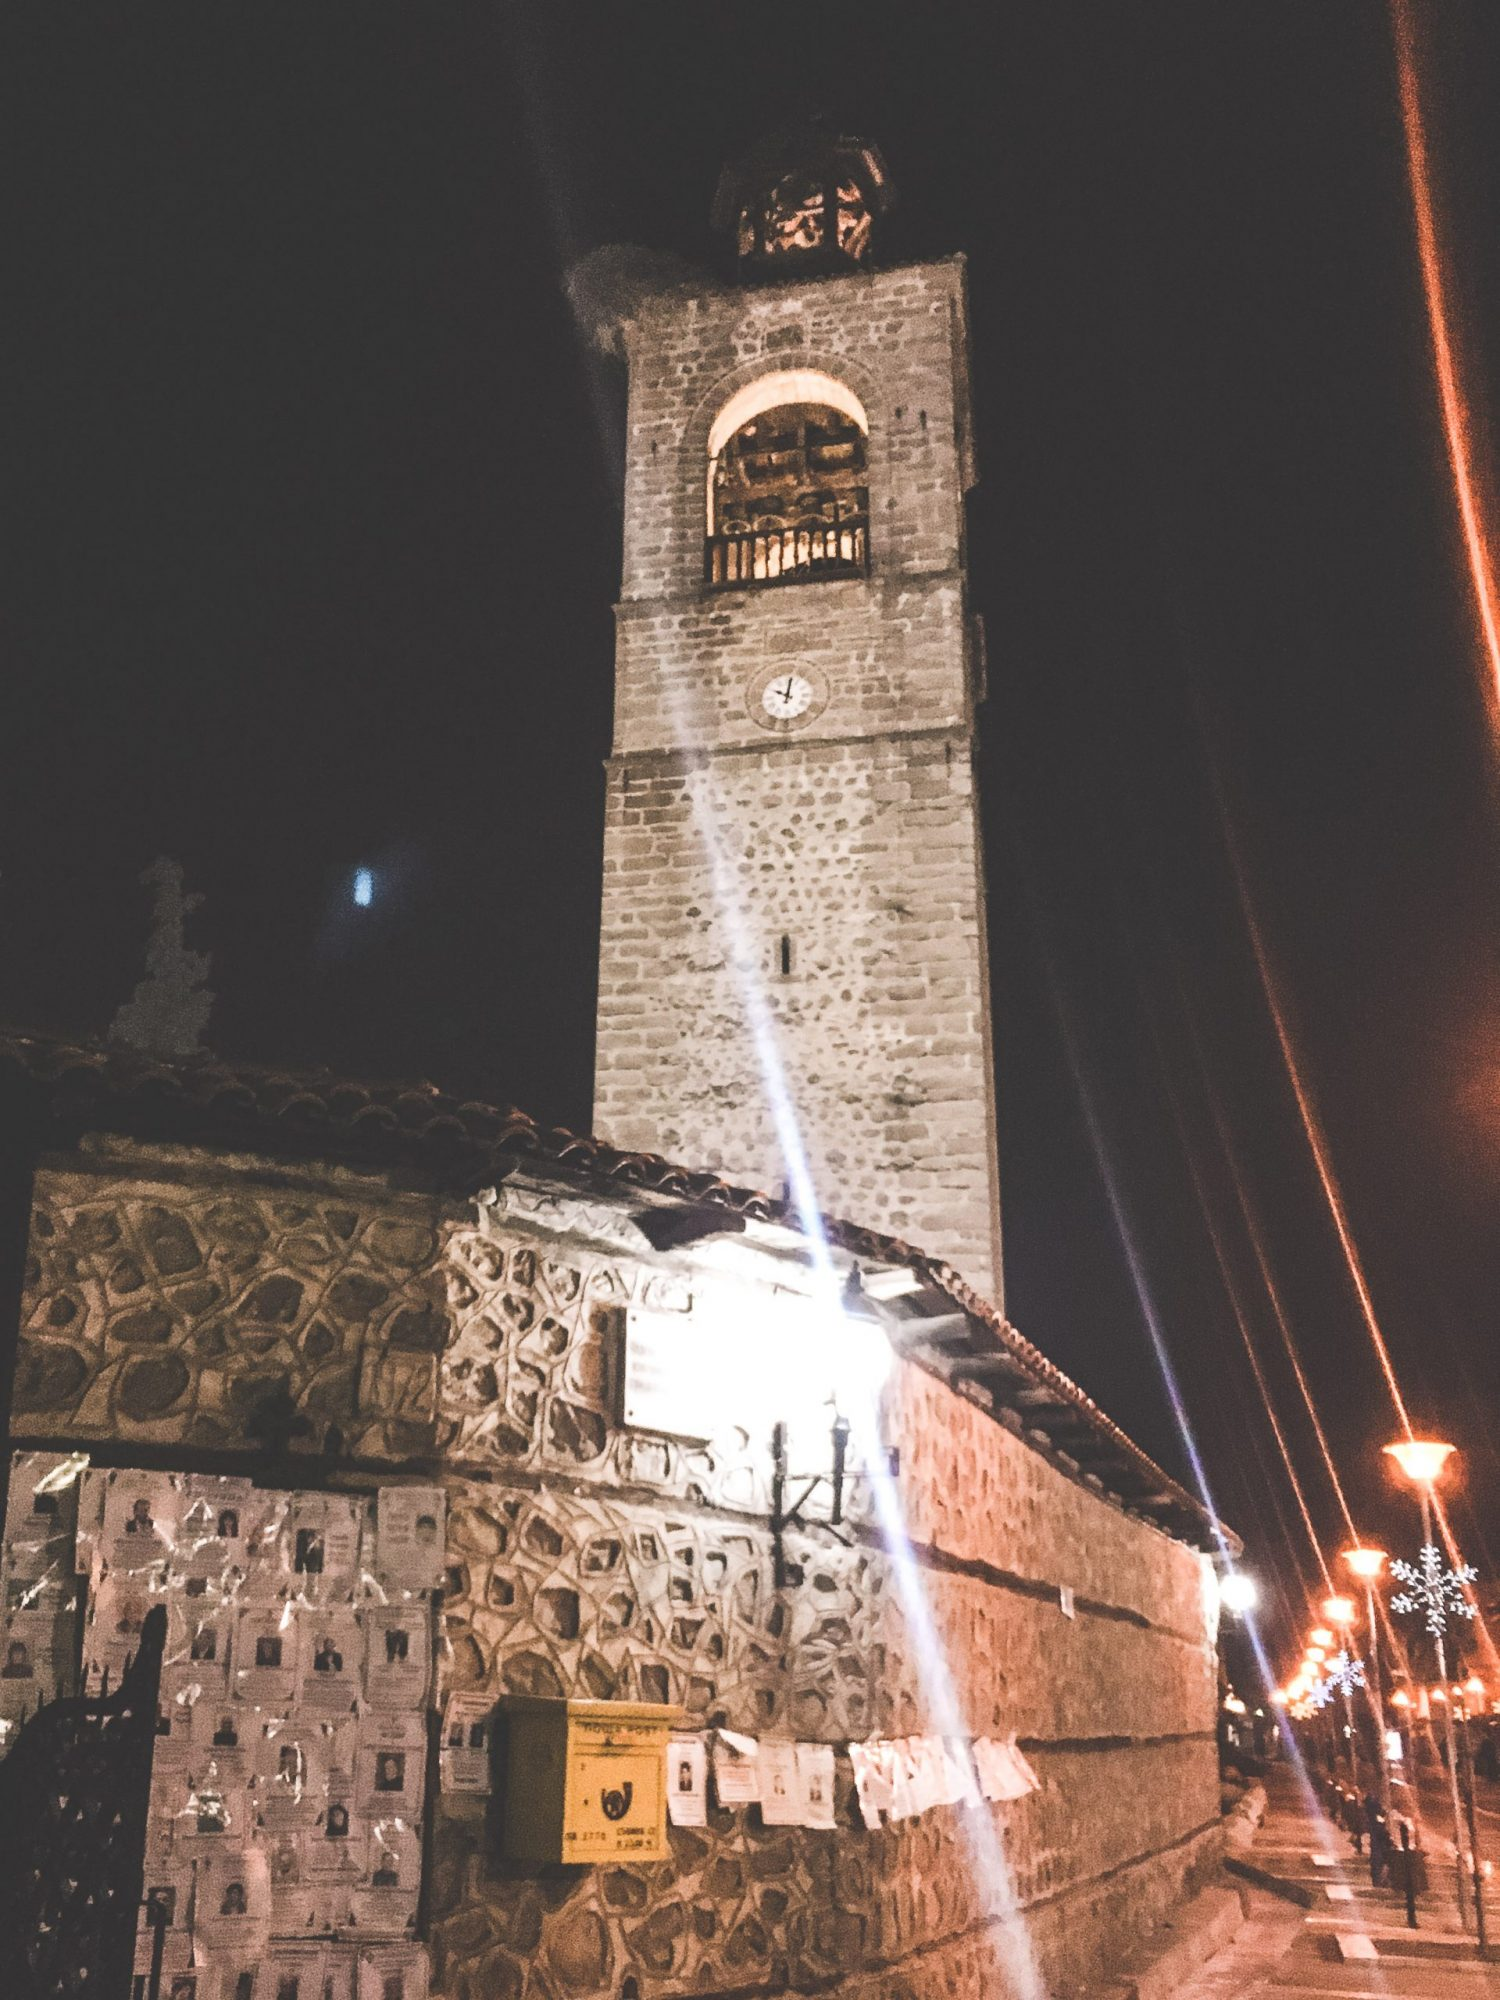 The Holy Trinity Church tower in Bansko, Bulgaria's Old Town at night.